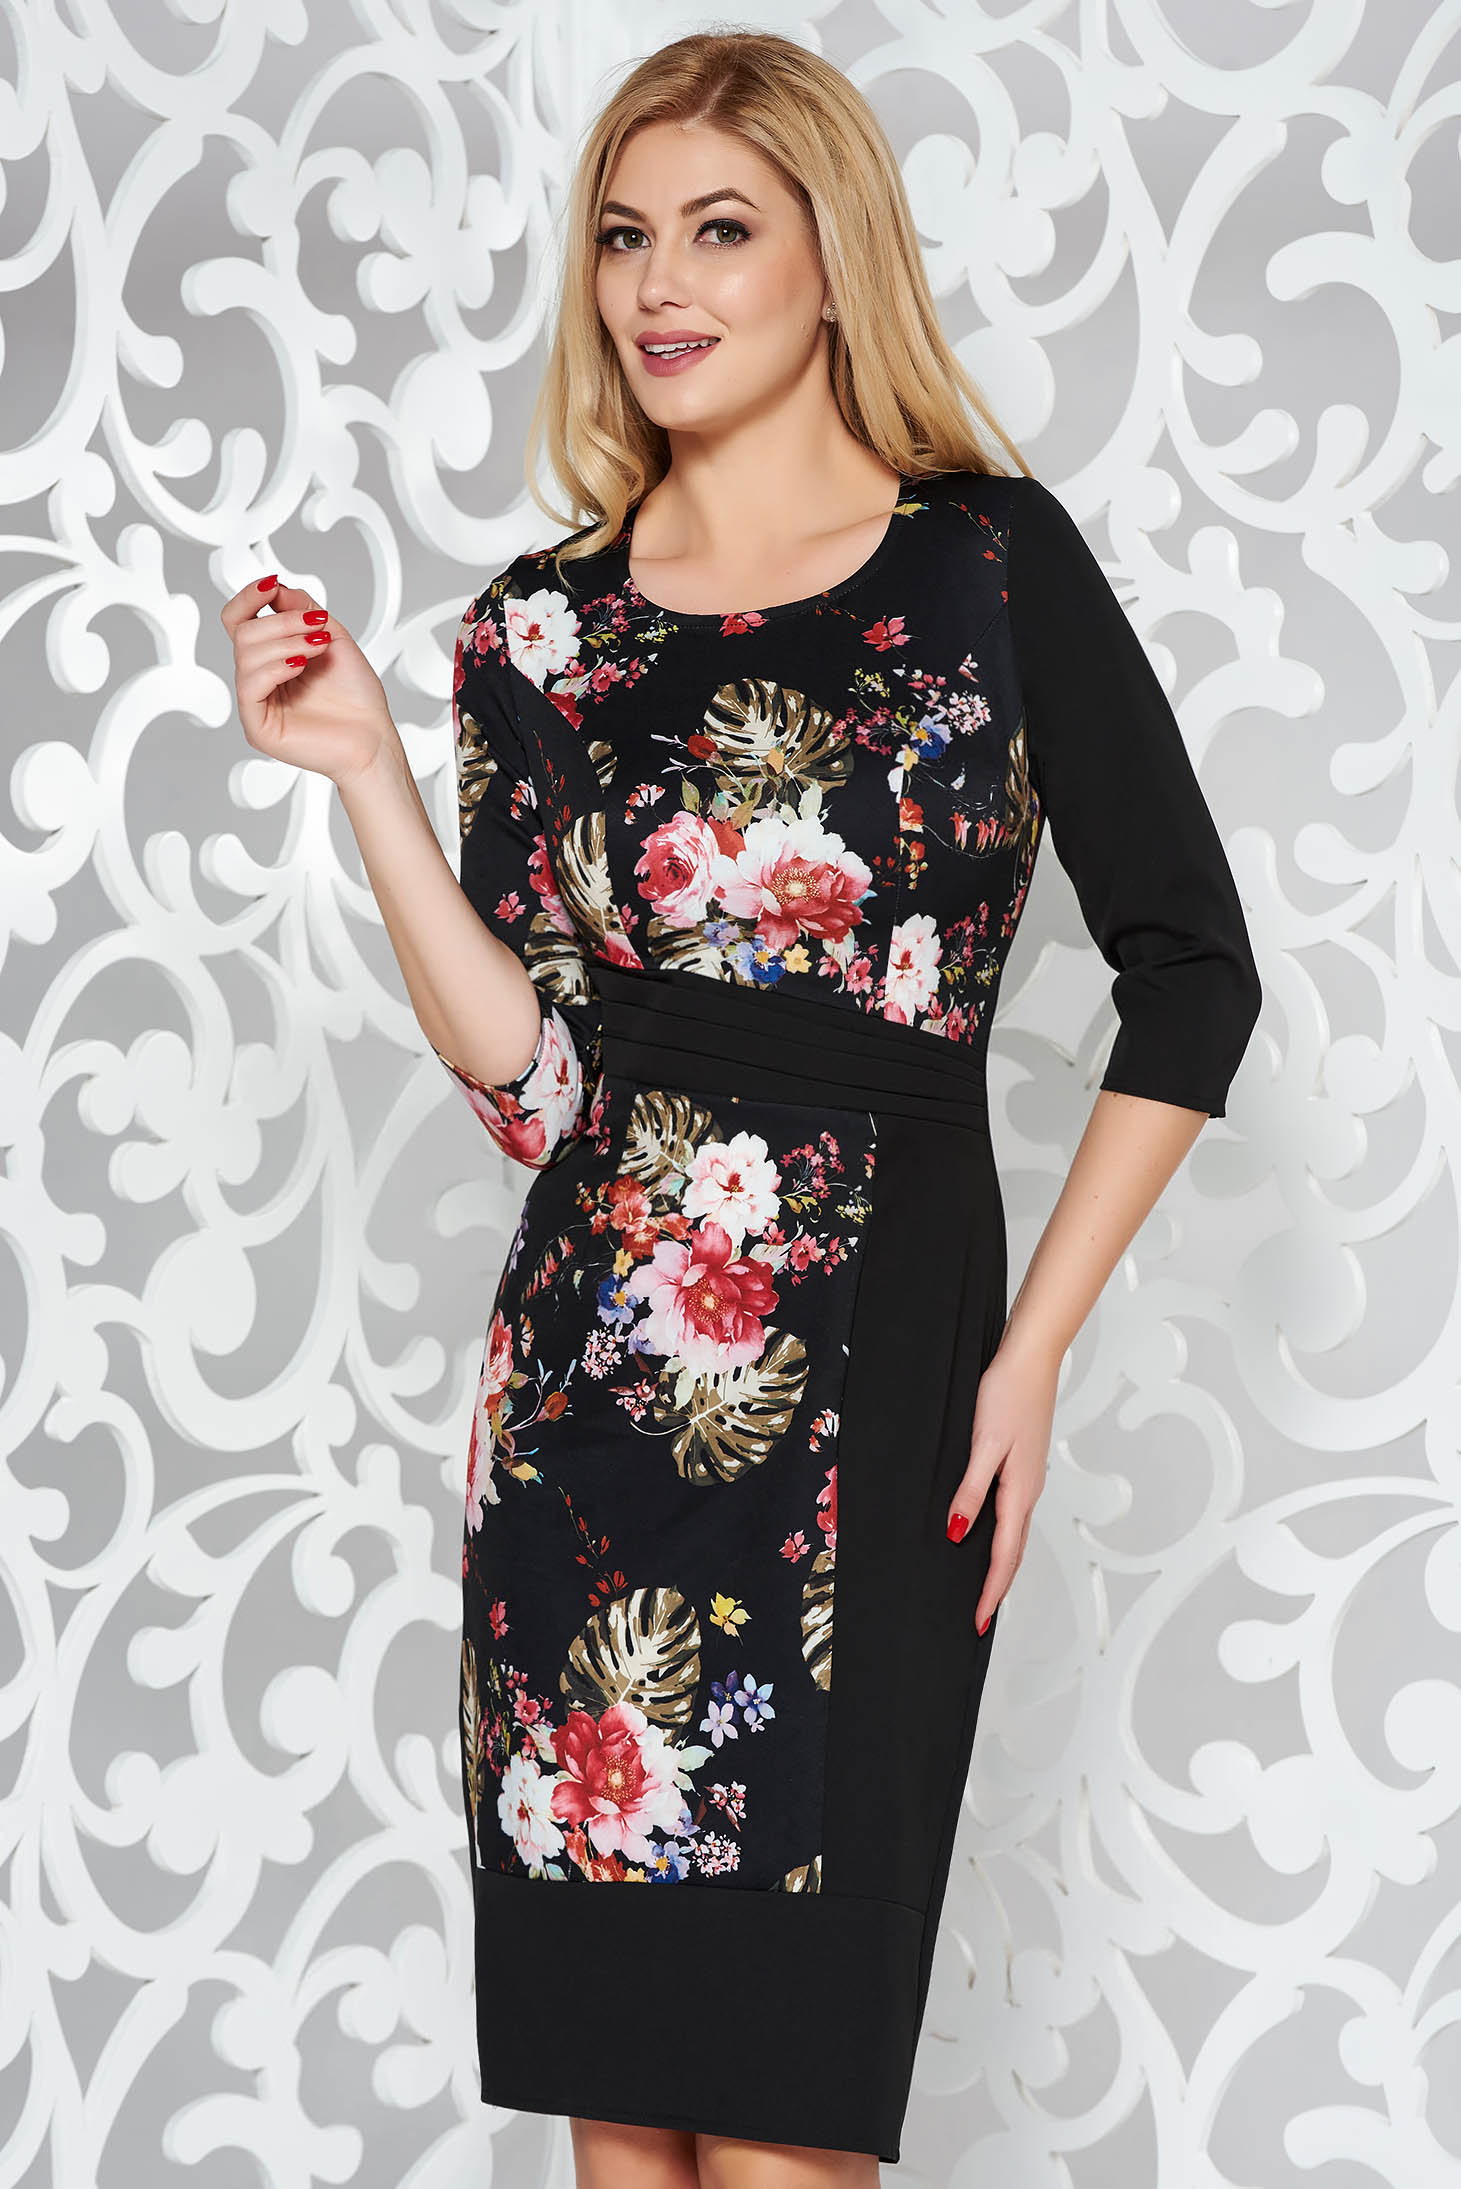 Black dress elegant pencil slightly elastic fabric with floral prints